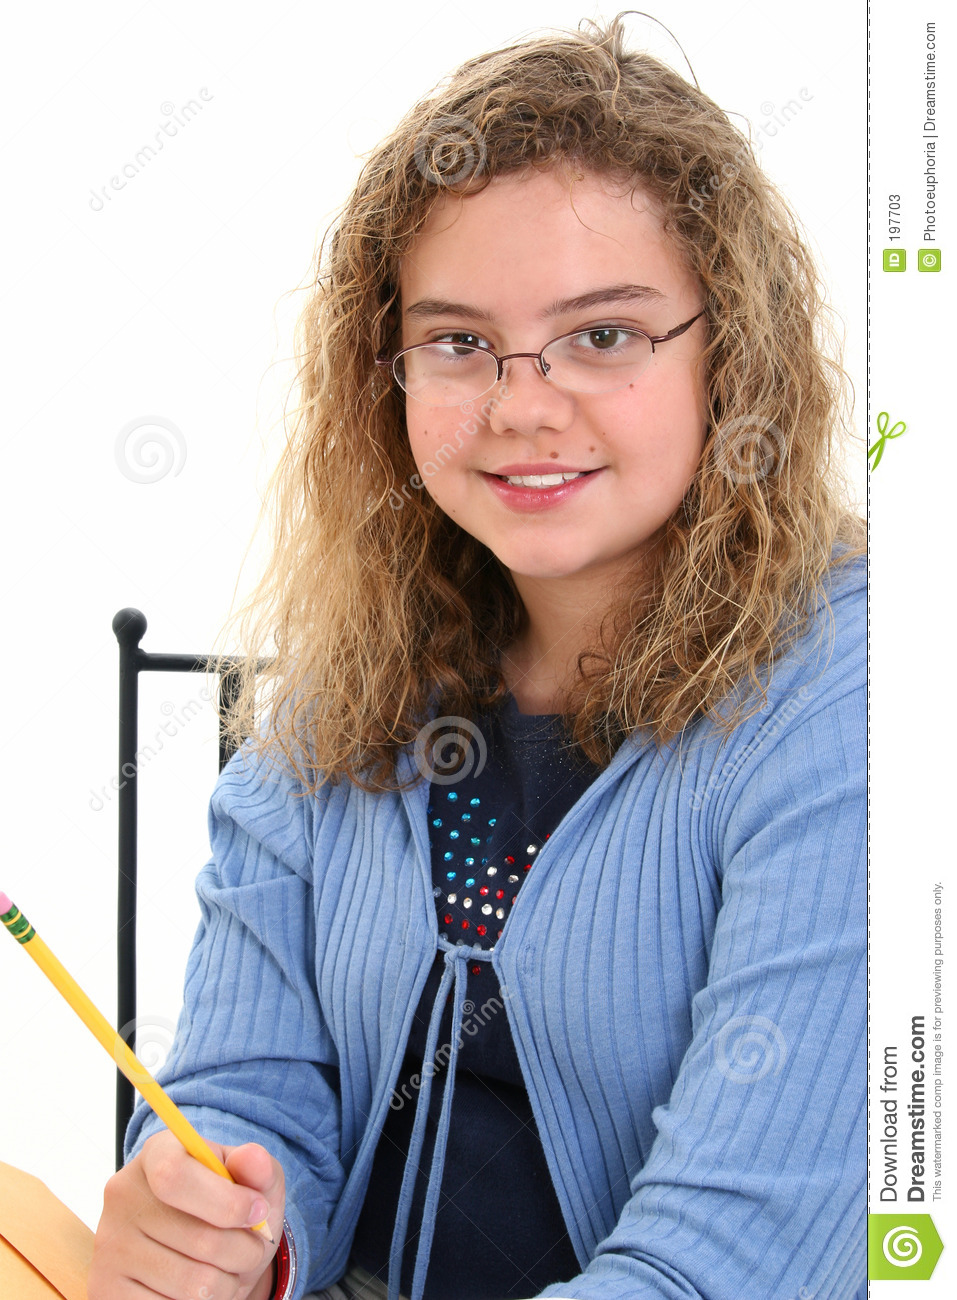 Beautiful 12 Year Old Girl Holding Pencil Stock Photos